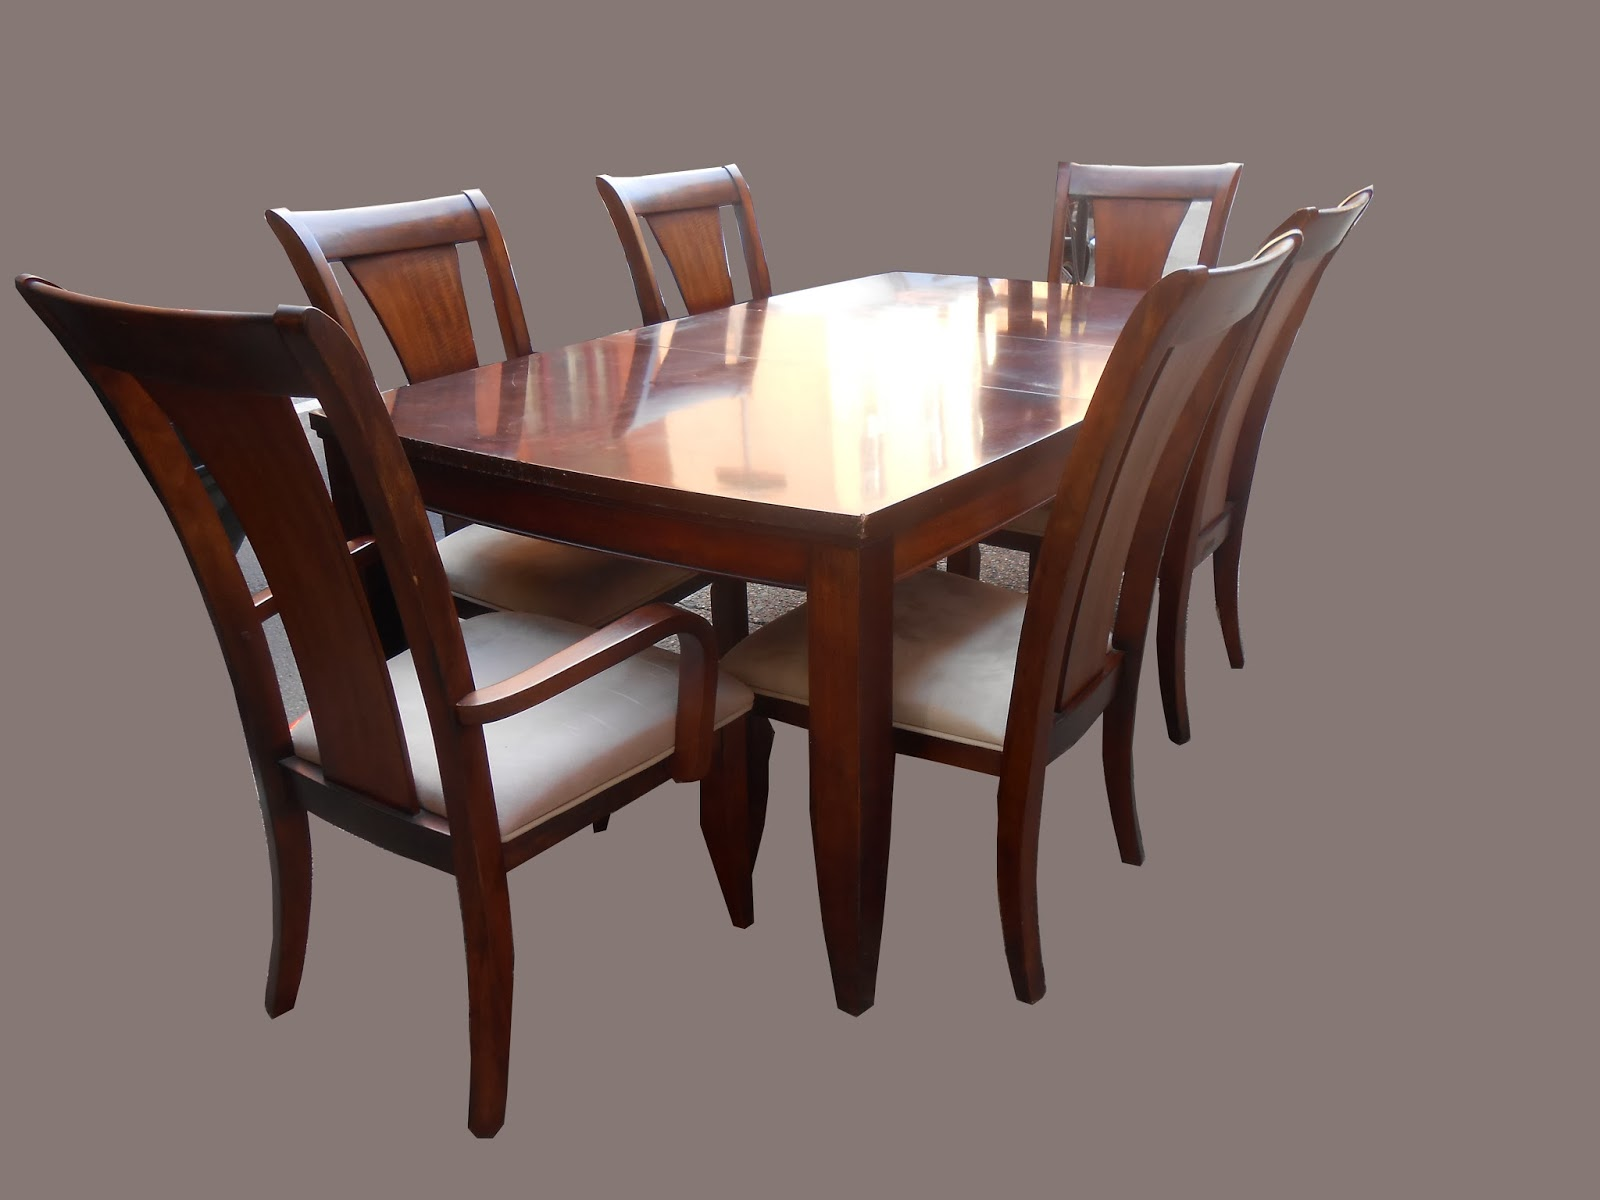 Dining room table 6 chairs round dining table set for 6 for Dining table with 6 chairs cheap